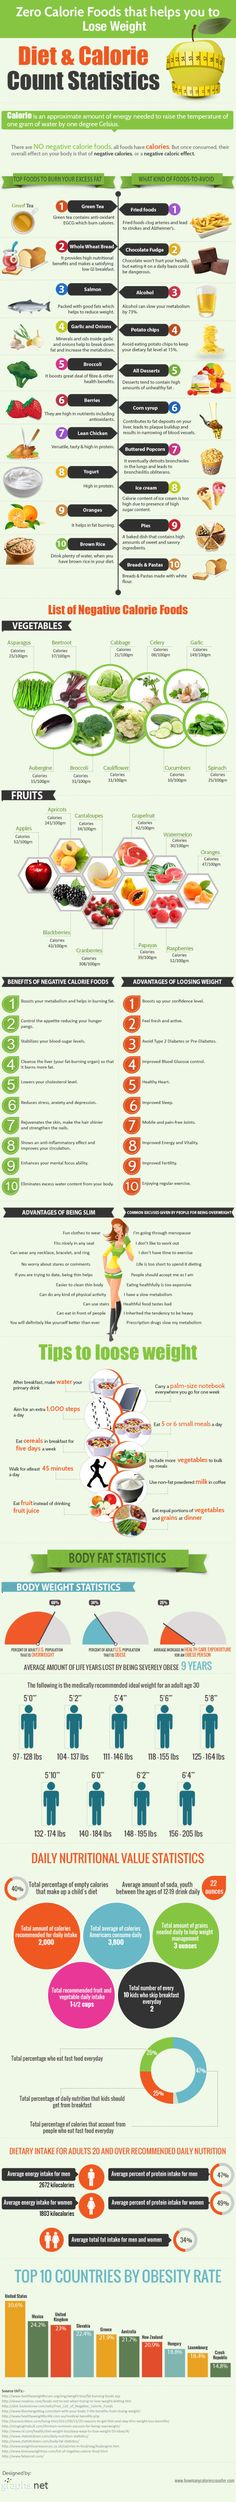 Infographic: Zero Calorie Foods That Help You Lose Weight